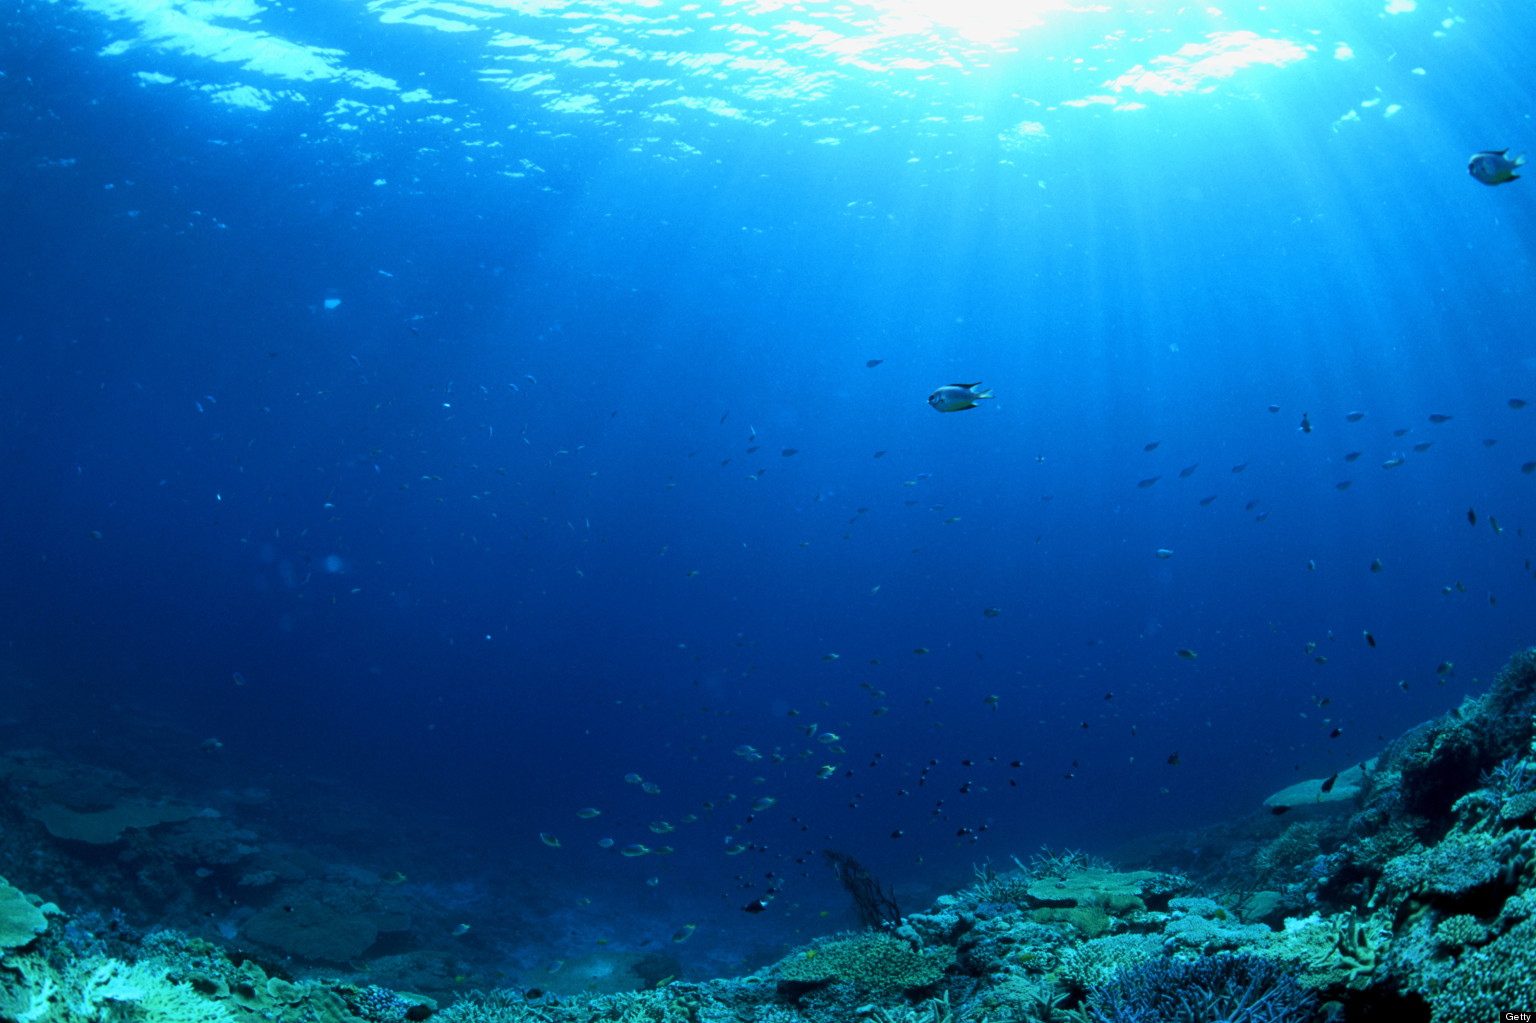 Oceans play a key role in maintaining global carbon cycle • Utah ...